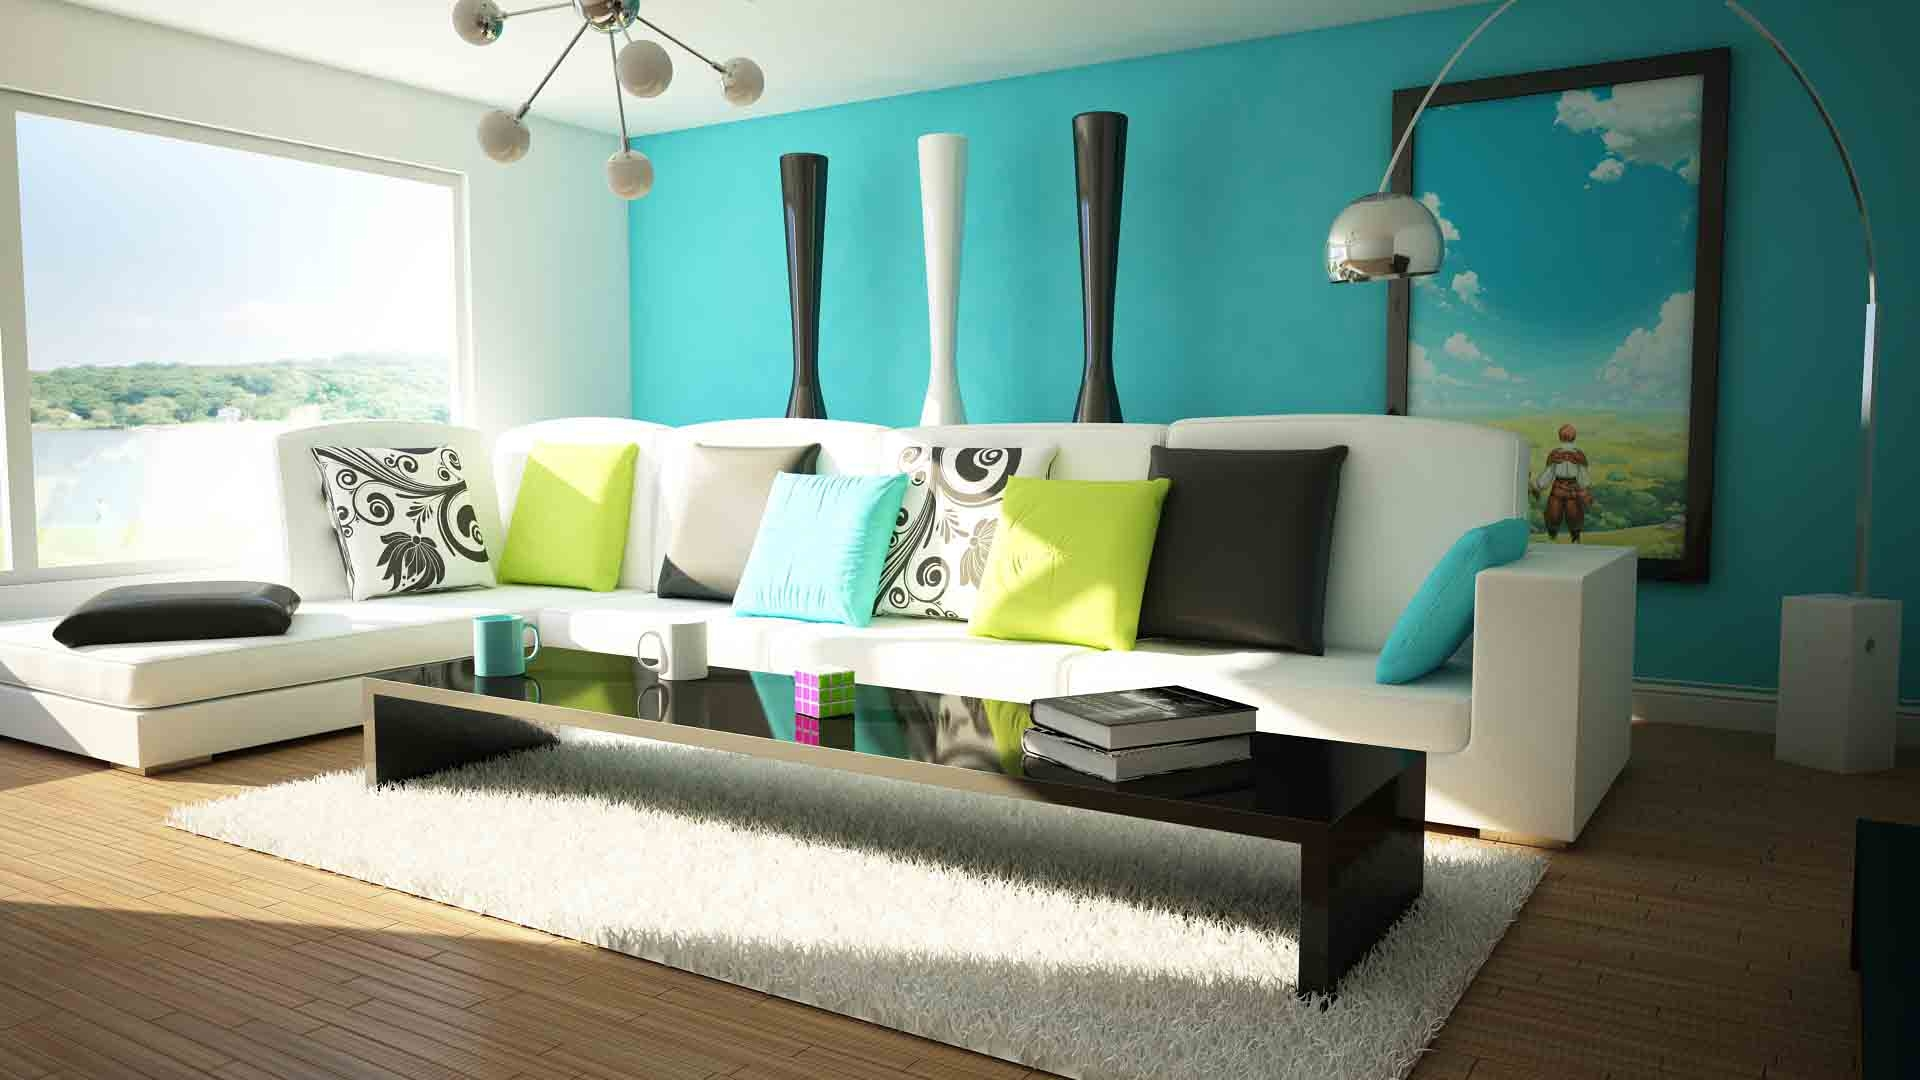 living room paint ideas uk 2016 how do i decorate my walls modern colors for with dark furniture